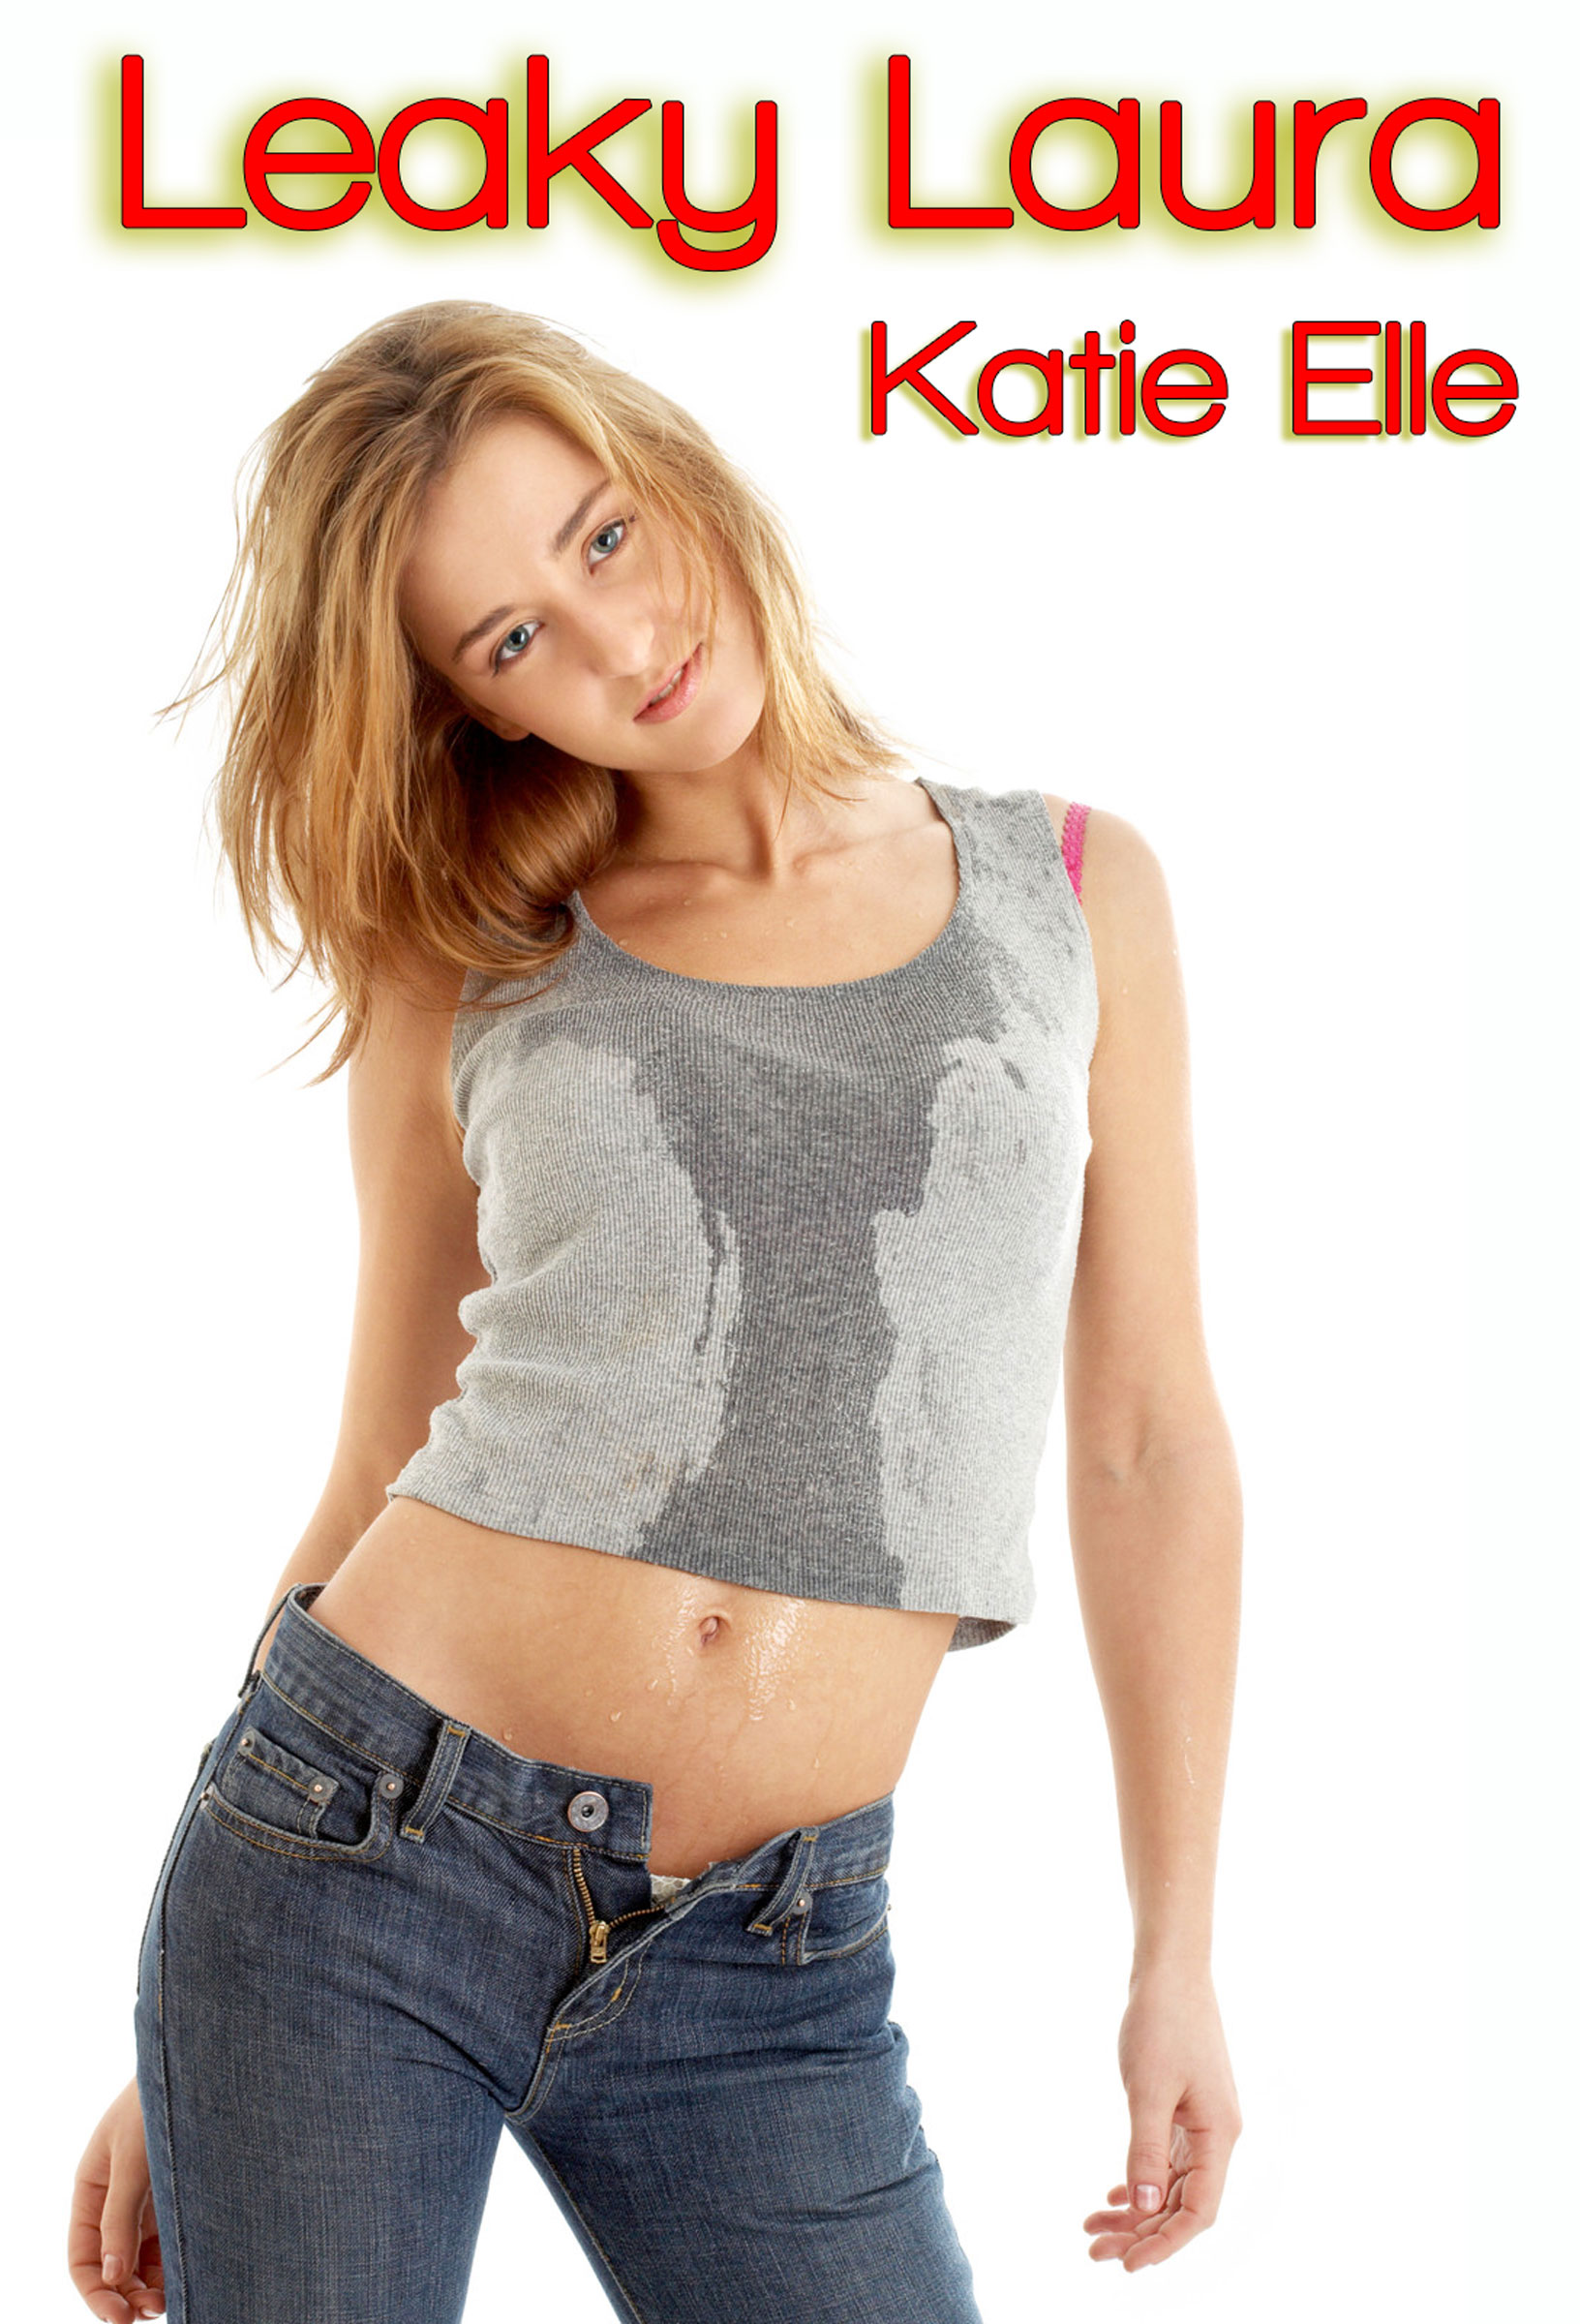 Katie Elle - Leaky Laura, Watersports and Golden Showers